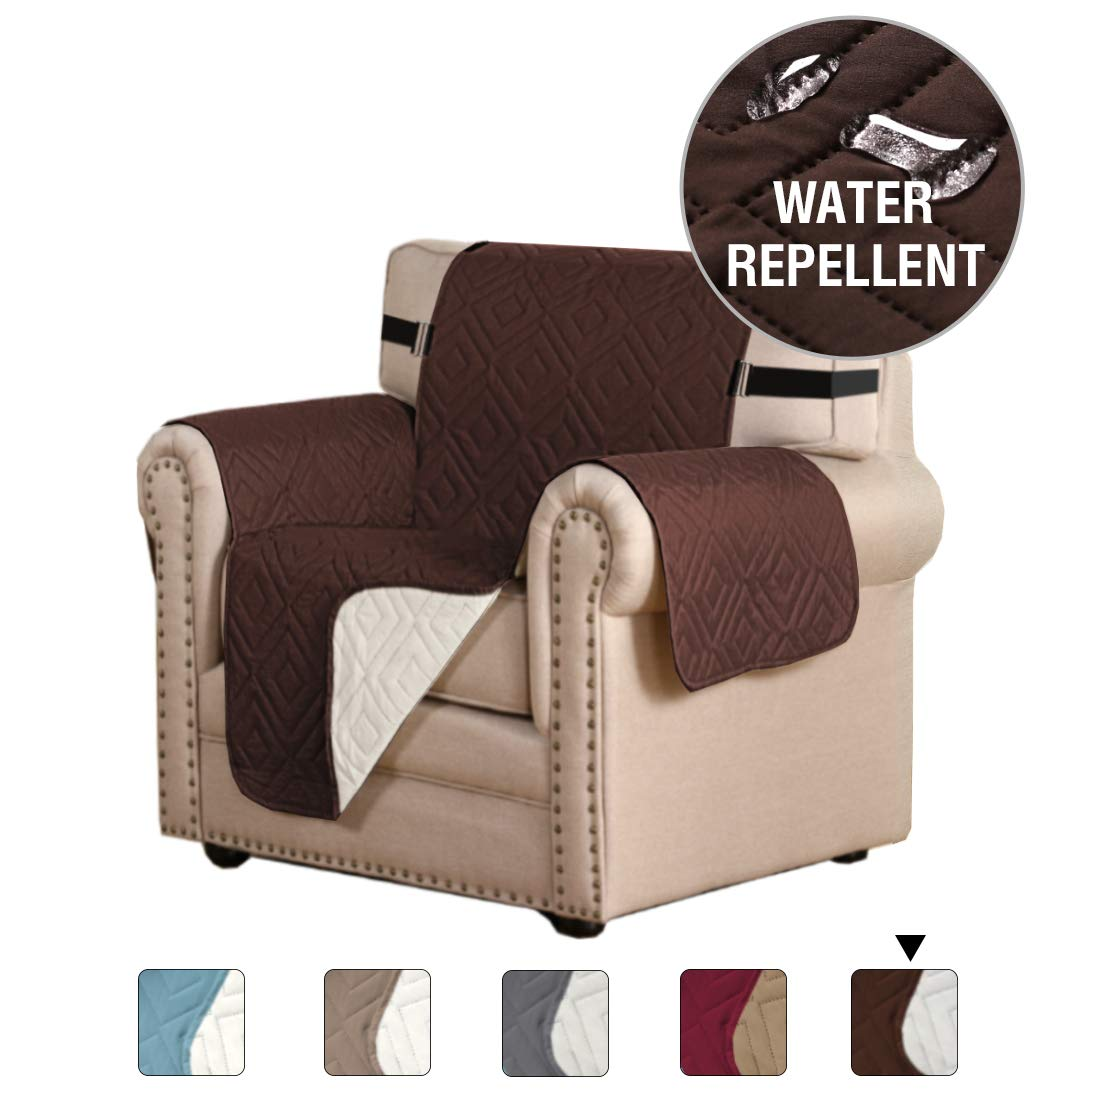 H.VERSAILTEX Prevent Stains Original Reversible Couch Slipcover Furniture Protector, Elastic Strap Machine Washable, Cover Perfect for Pets and Kids